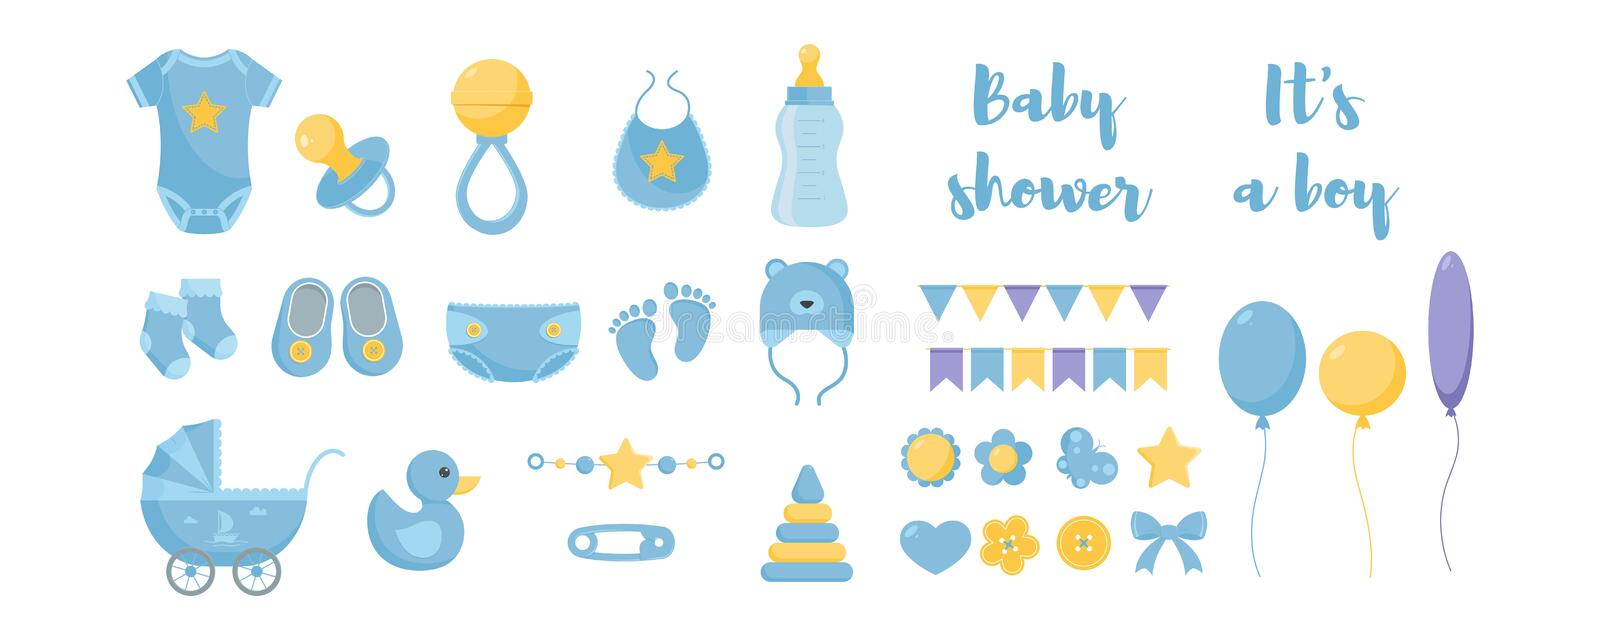 Toddler nursing and health care and hygiene products with decorative elements for baby shower design. stock illustration